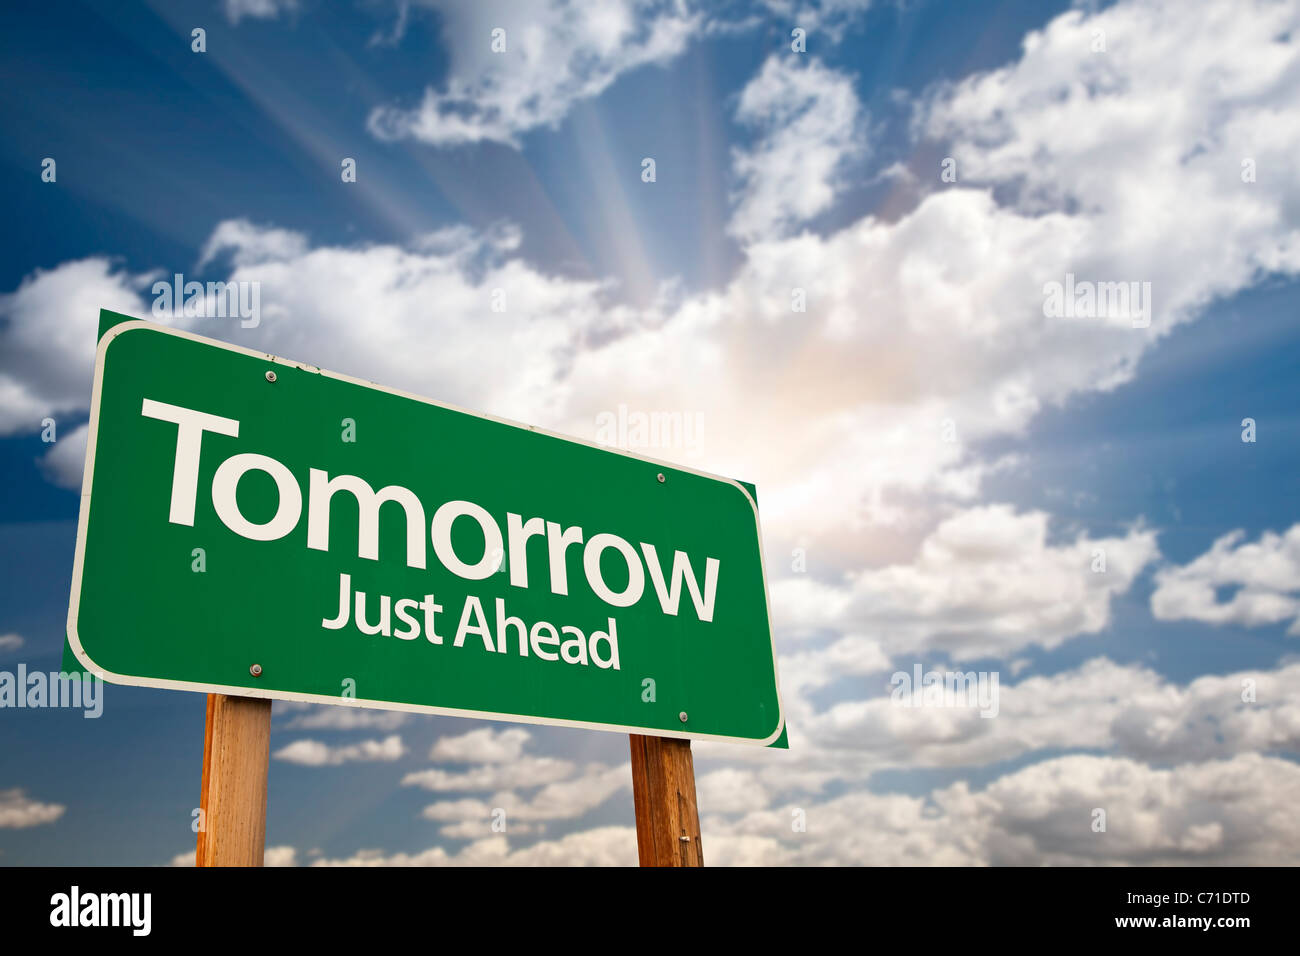 Tomorrow Green Road Sign Against Dramatic Sky, Clouds and Sunburst. - Stock Image